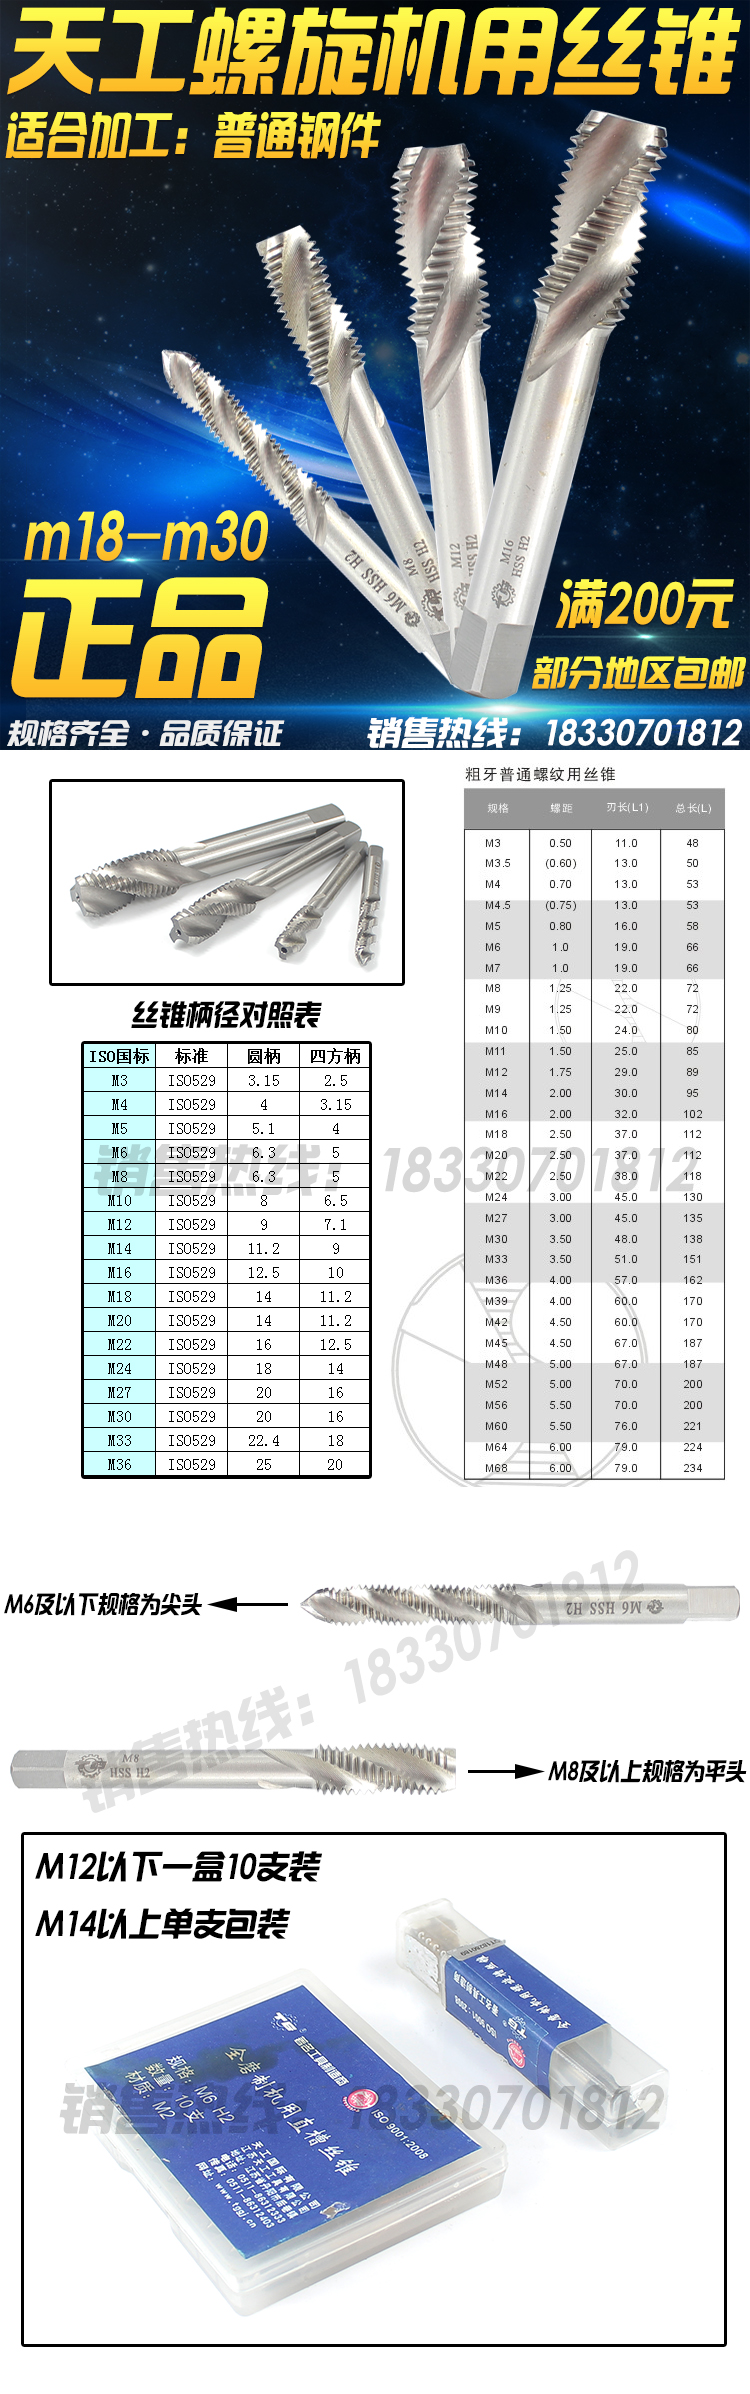 Screw thread tapping M3M4M5M6M8M10M12M14M16*1*1.25*1.5 of Jiangsu Tiangong machine tap